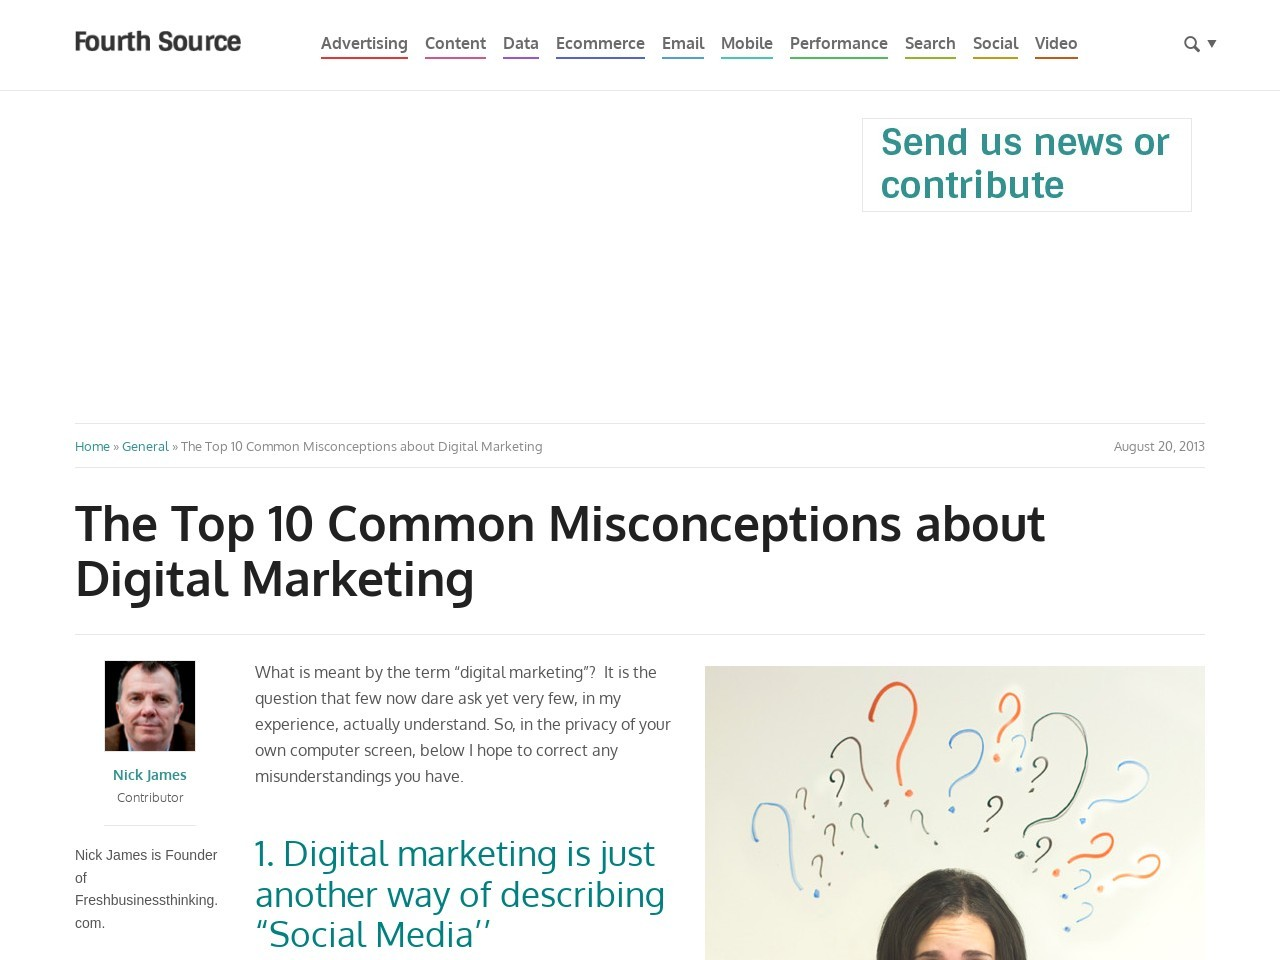 The Top 10 Common Misconceptions about Digital Marketing